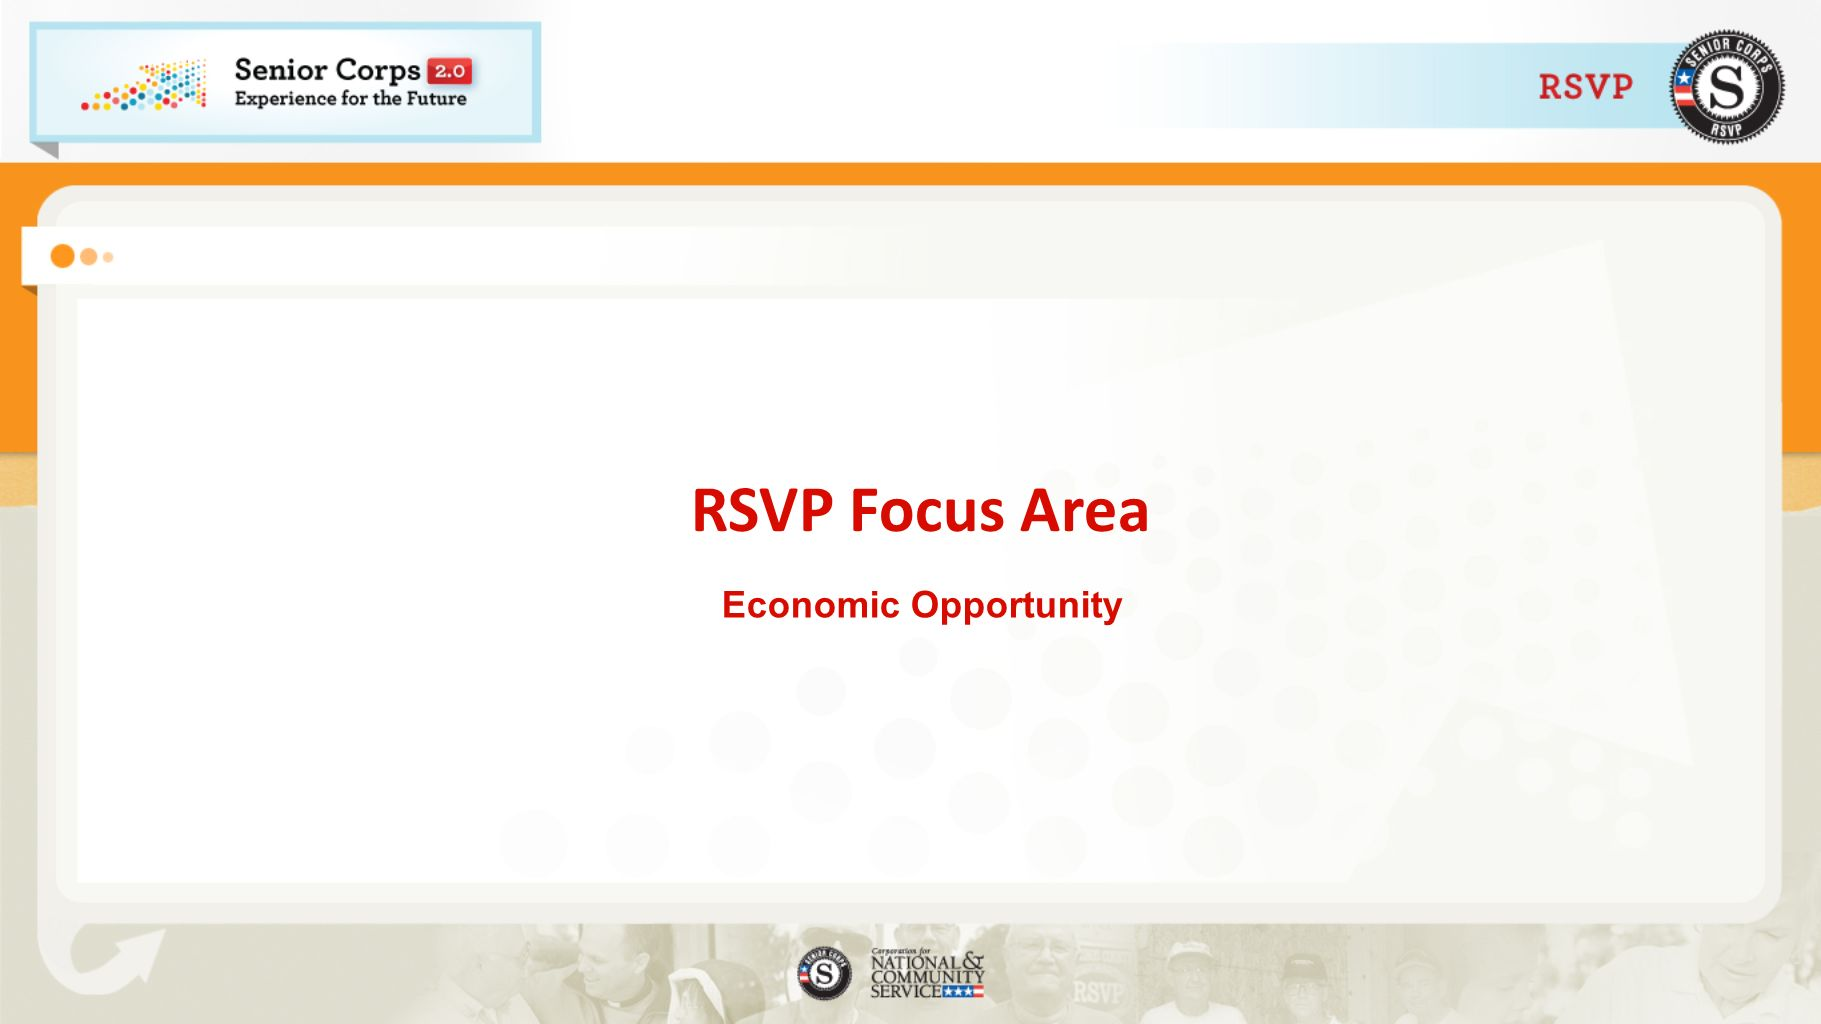 RSVP Focus Area Economic Opportunity